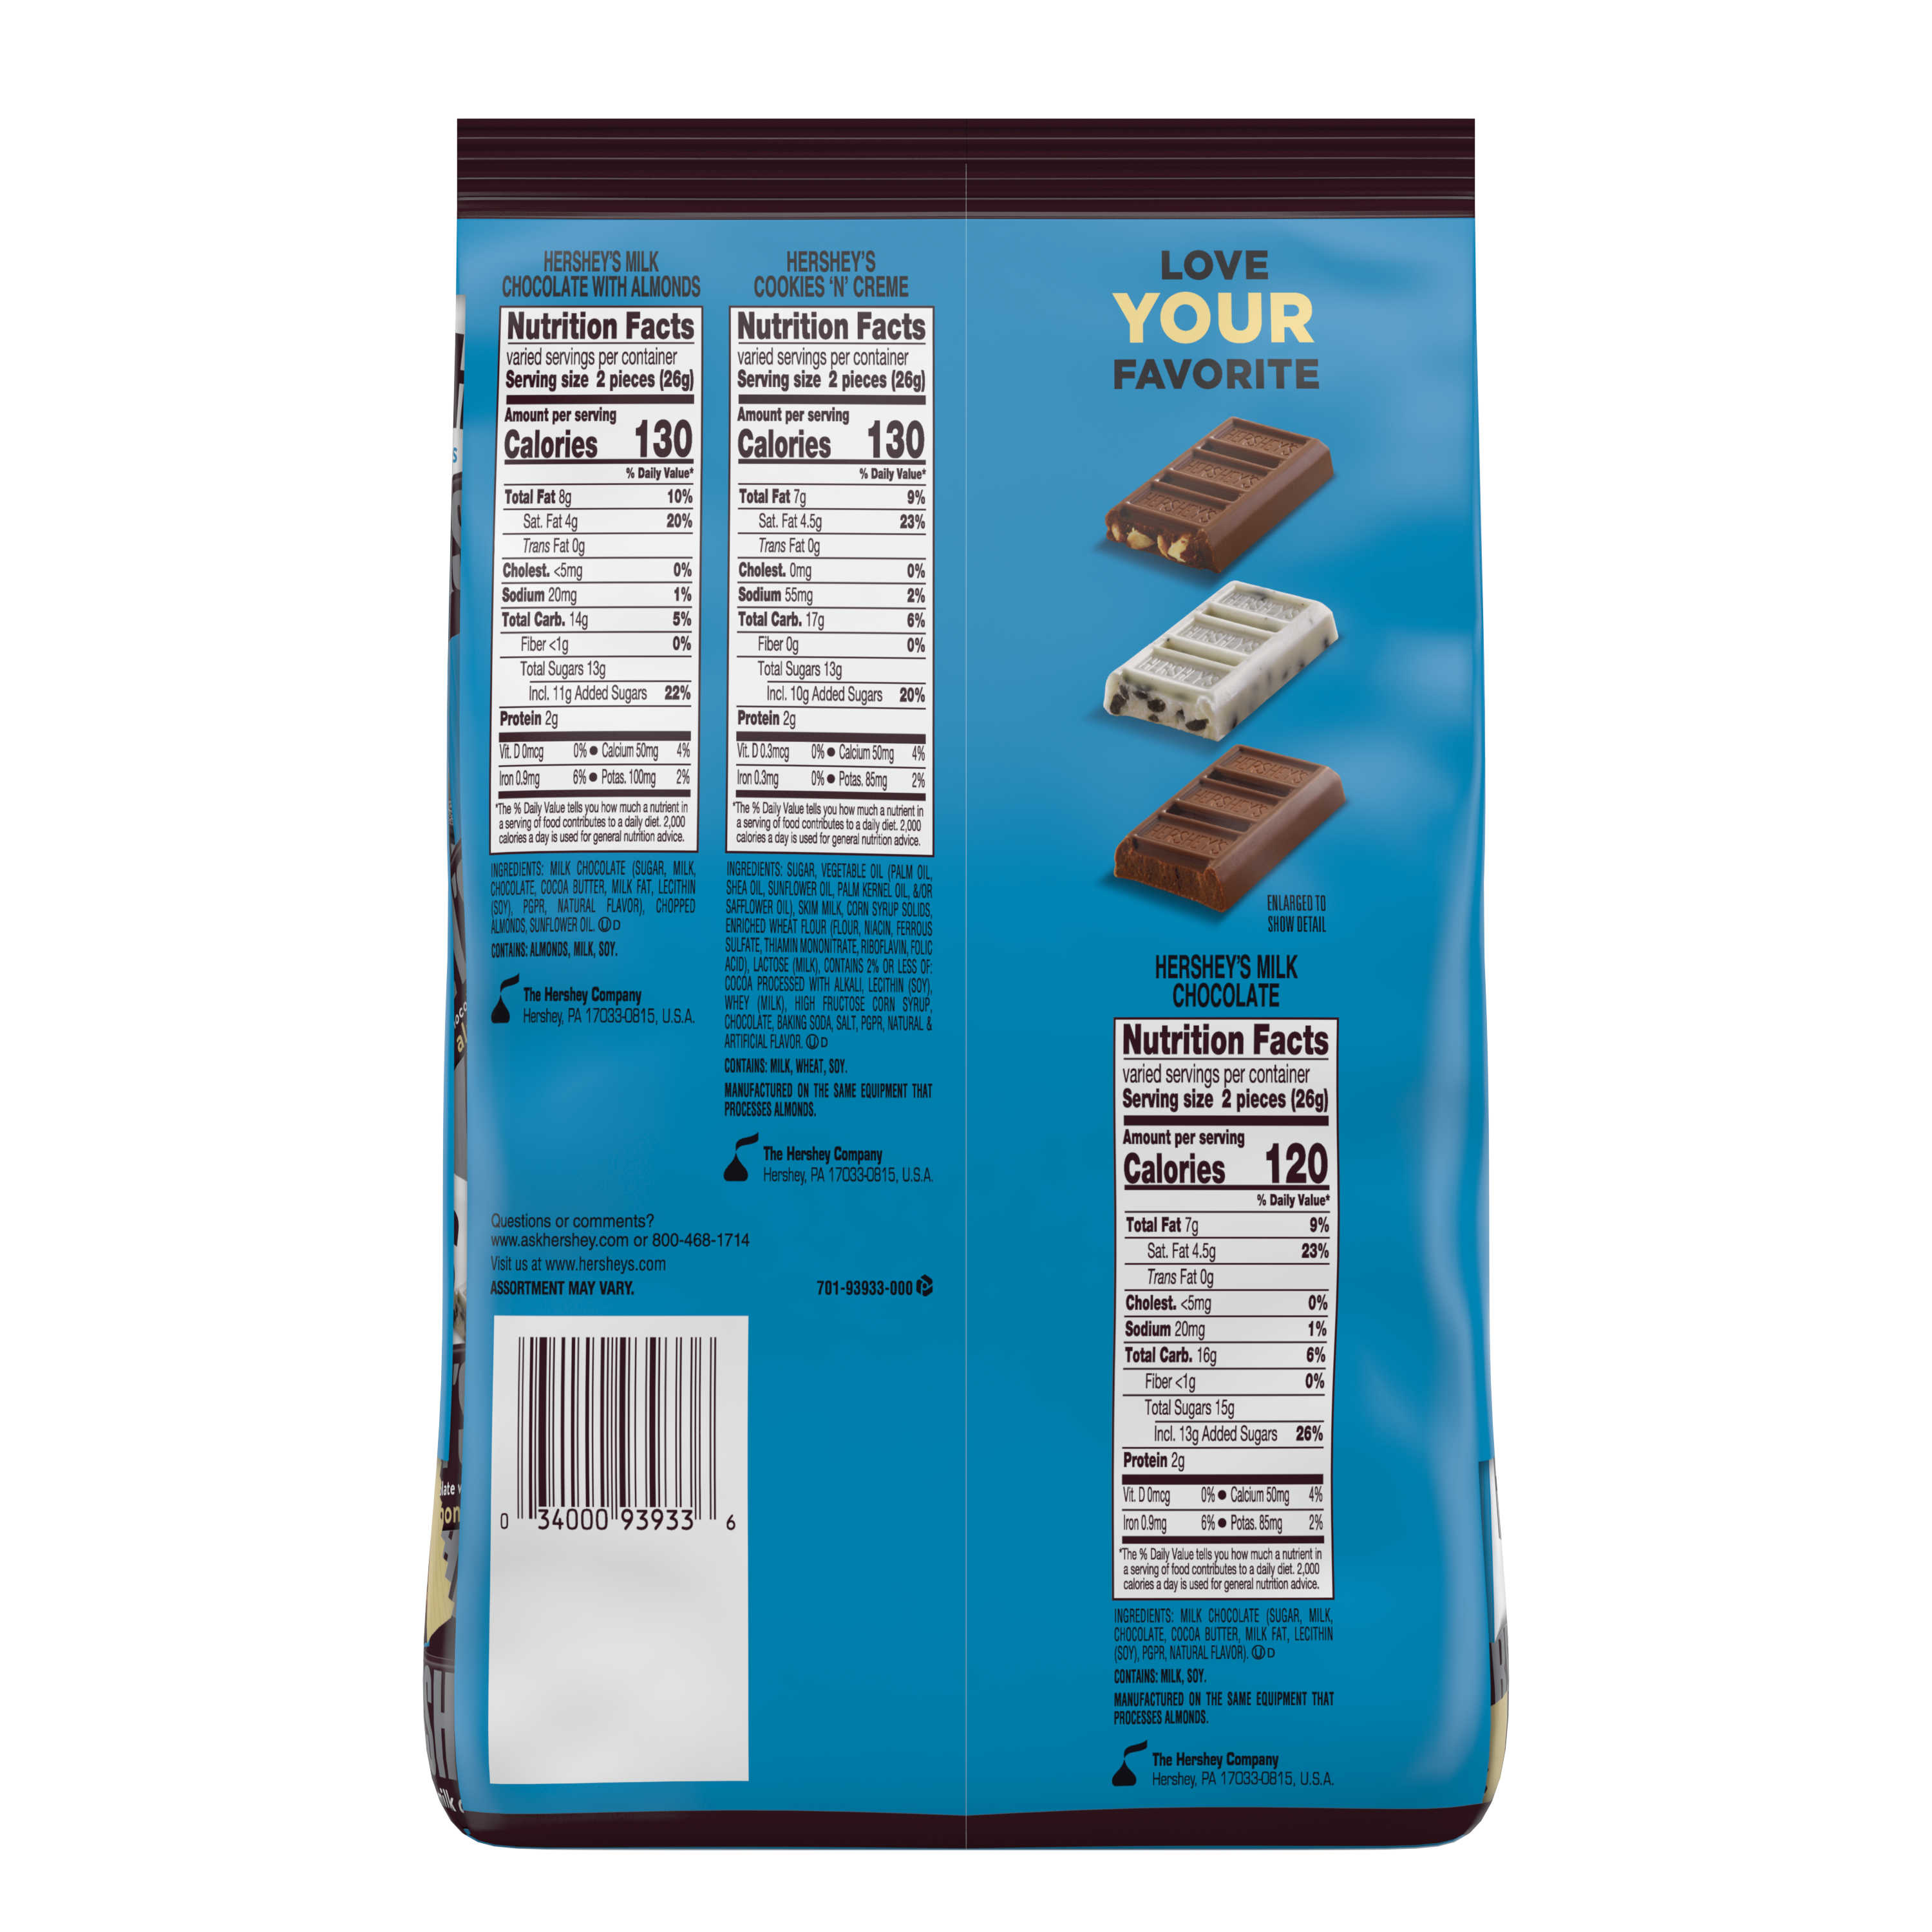 HERSHEY'S Snack Size Assortment, 31.5 oz bag - Back of Package